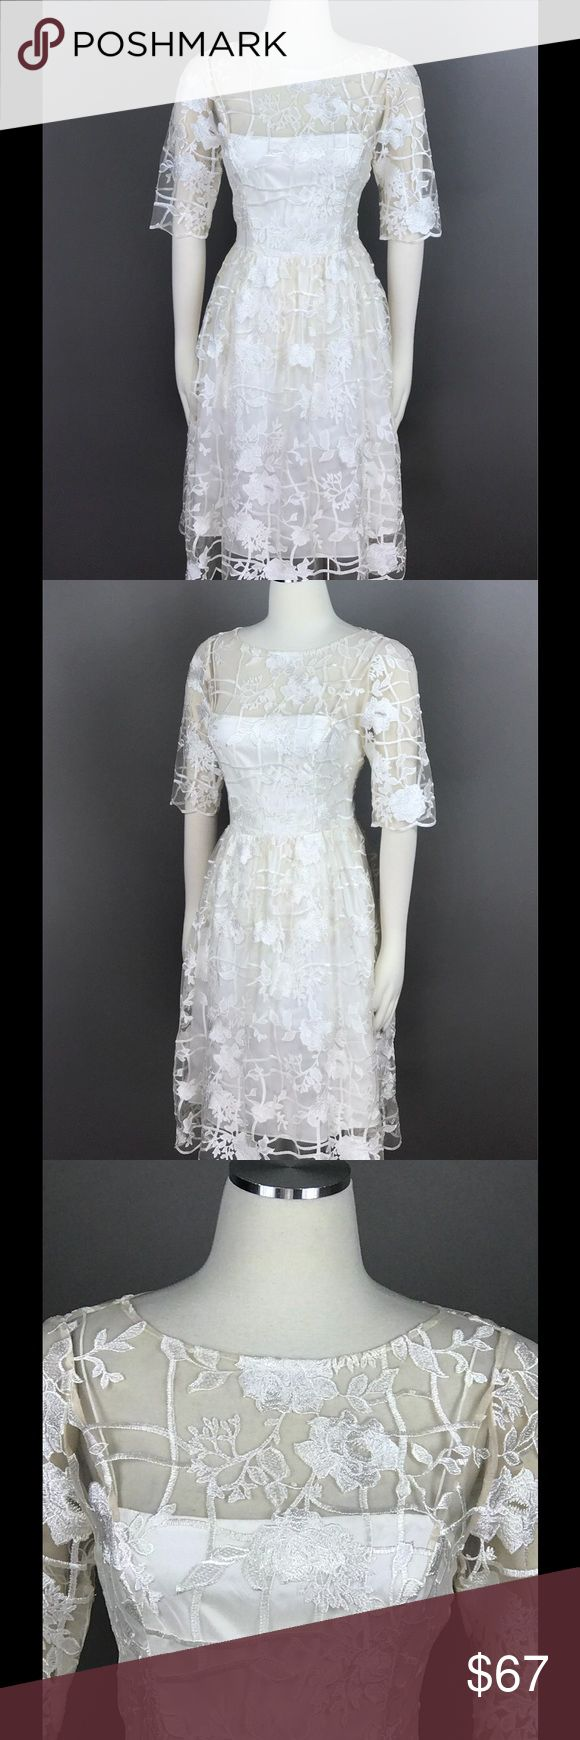 Adrianna Papell Dress Rose Embroidered NEW Adrianna Papell White Ivory Party Dress Size 6 Rose Embroidered Grid Sheath $229 NEW Adrianna Papell Dresses Midi